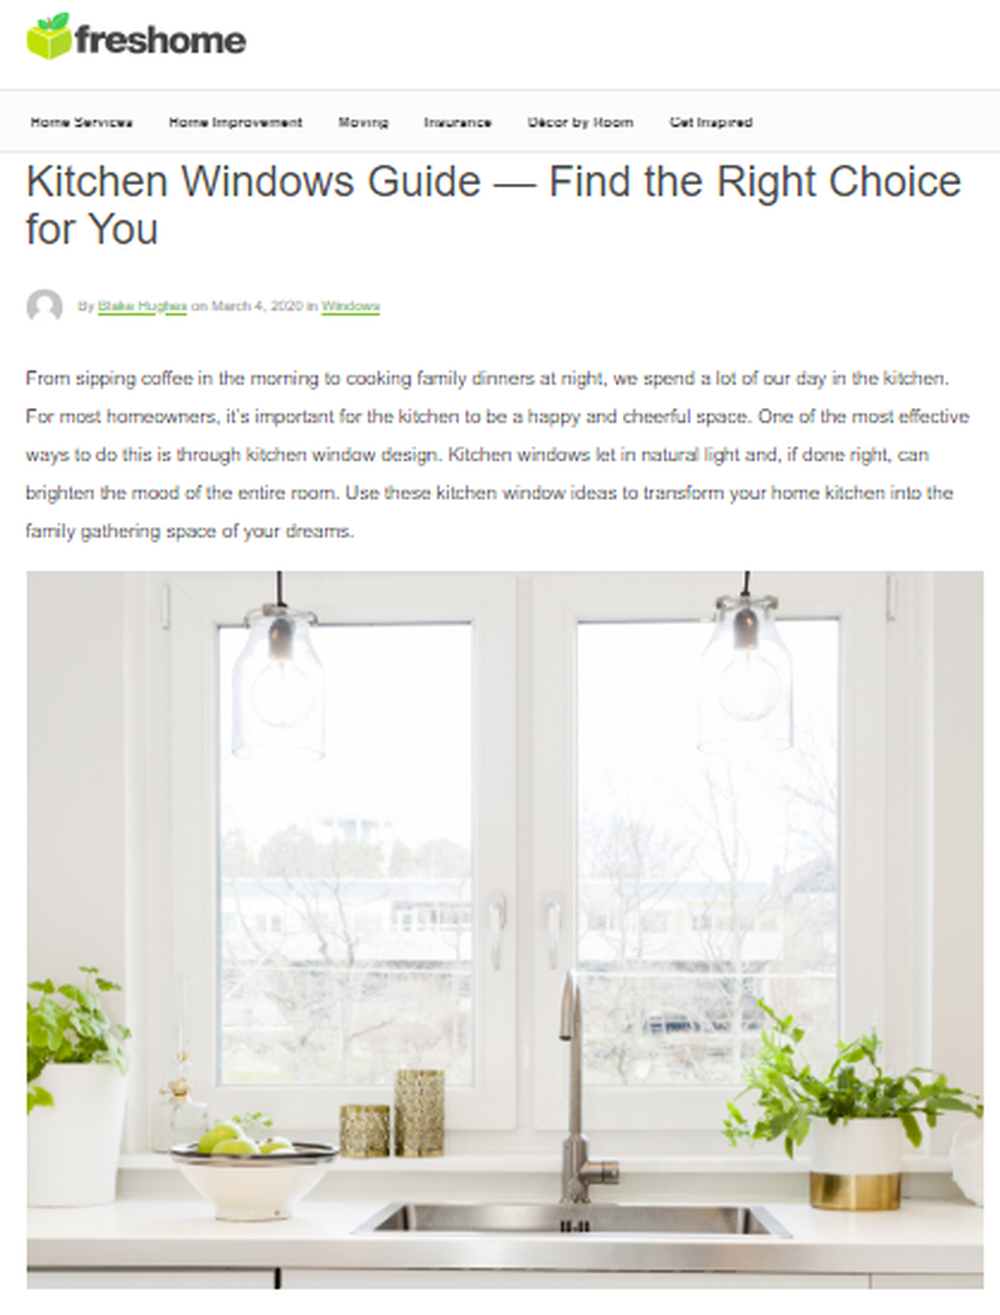 Kitchen_Windows_Guide_—_Find_the_Right_Choice_for_You_Freshome_com.png